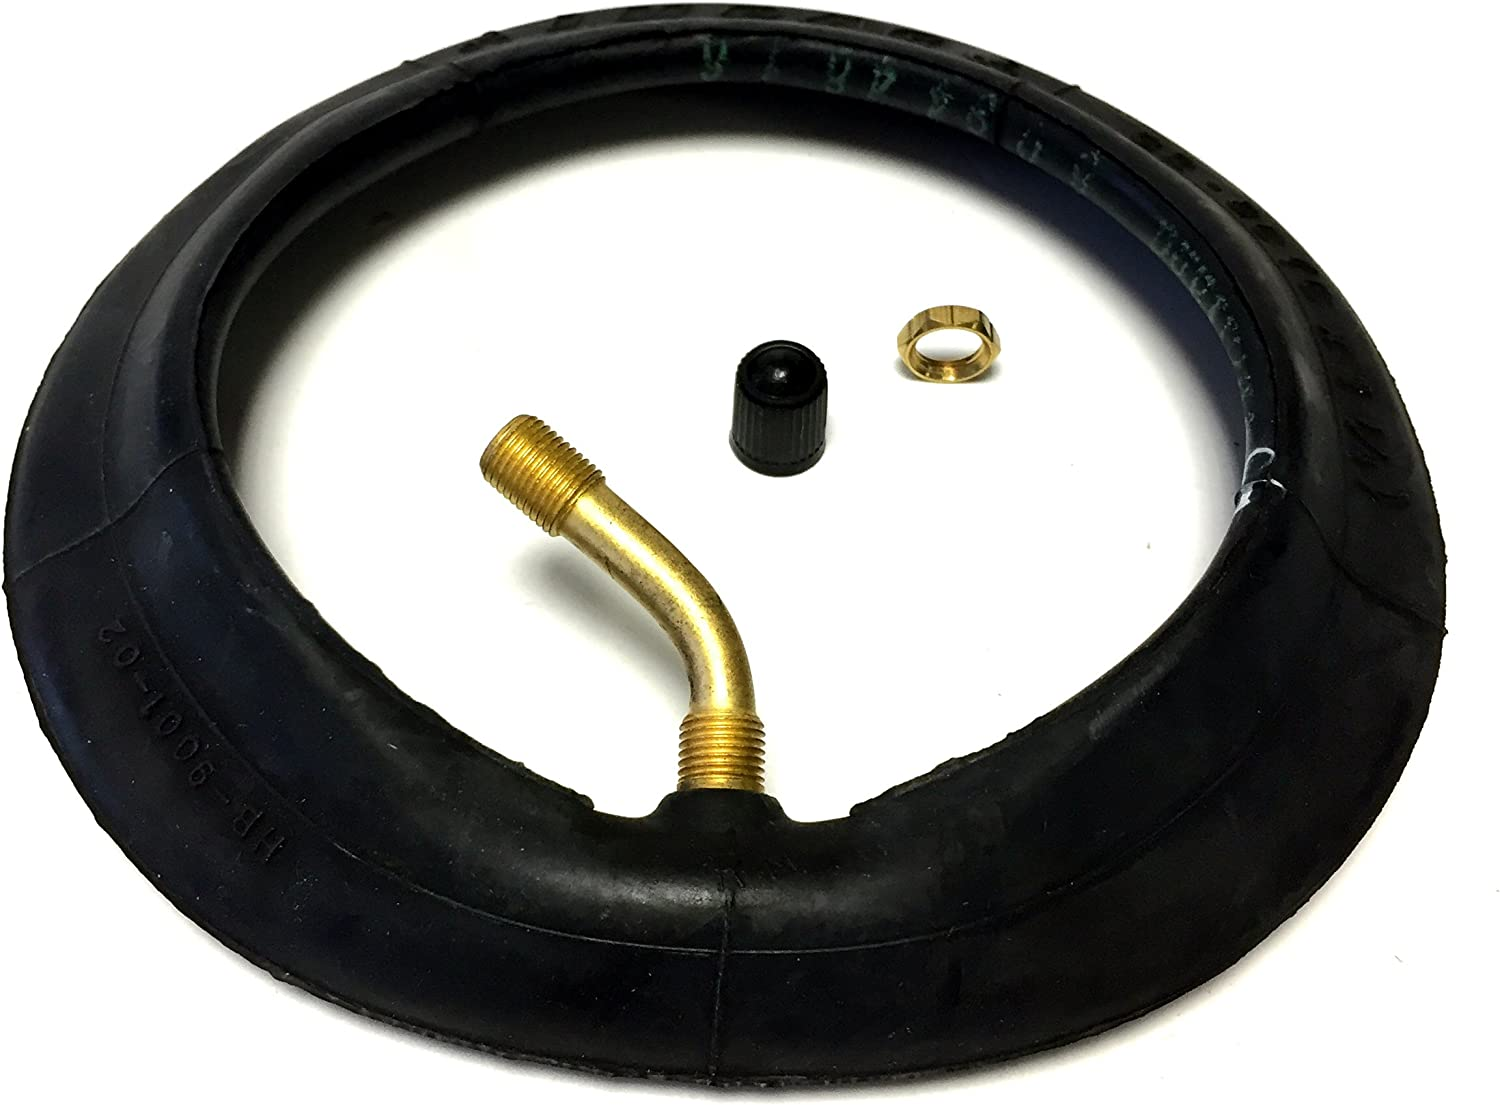 Cst Hose 6 X 1 1 4 Also 150 X 30 Up To 6 9 Bar Angle Valve For Wheelchair Tyres E Scooters Roller Skis Ski Scooters Skikes And Powerslide Auto